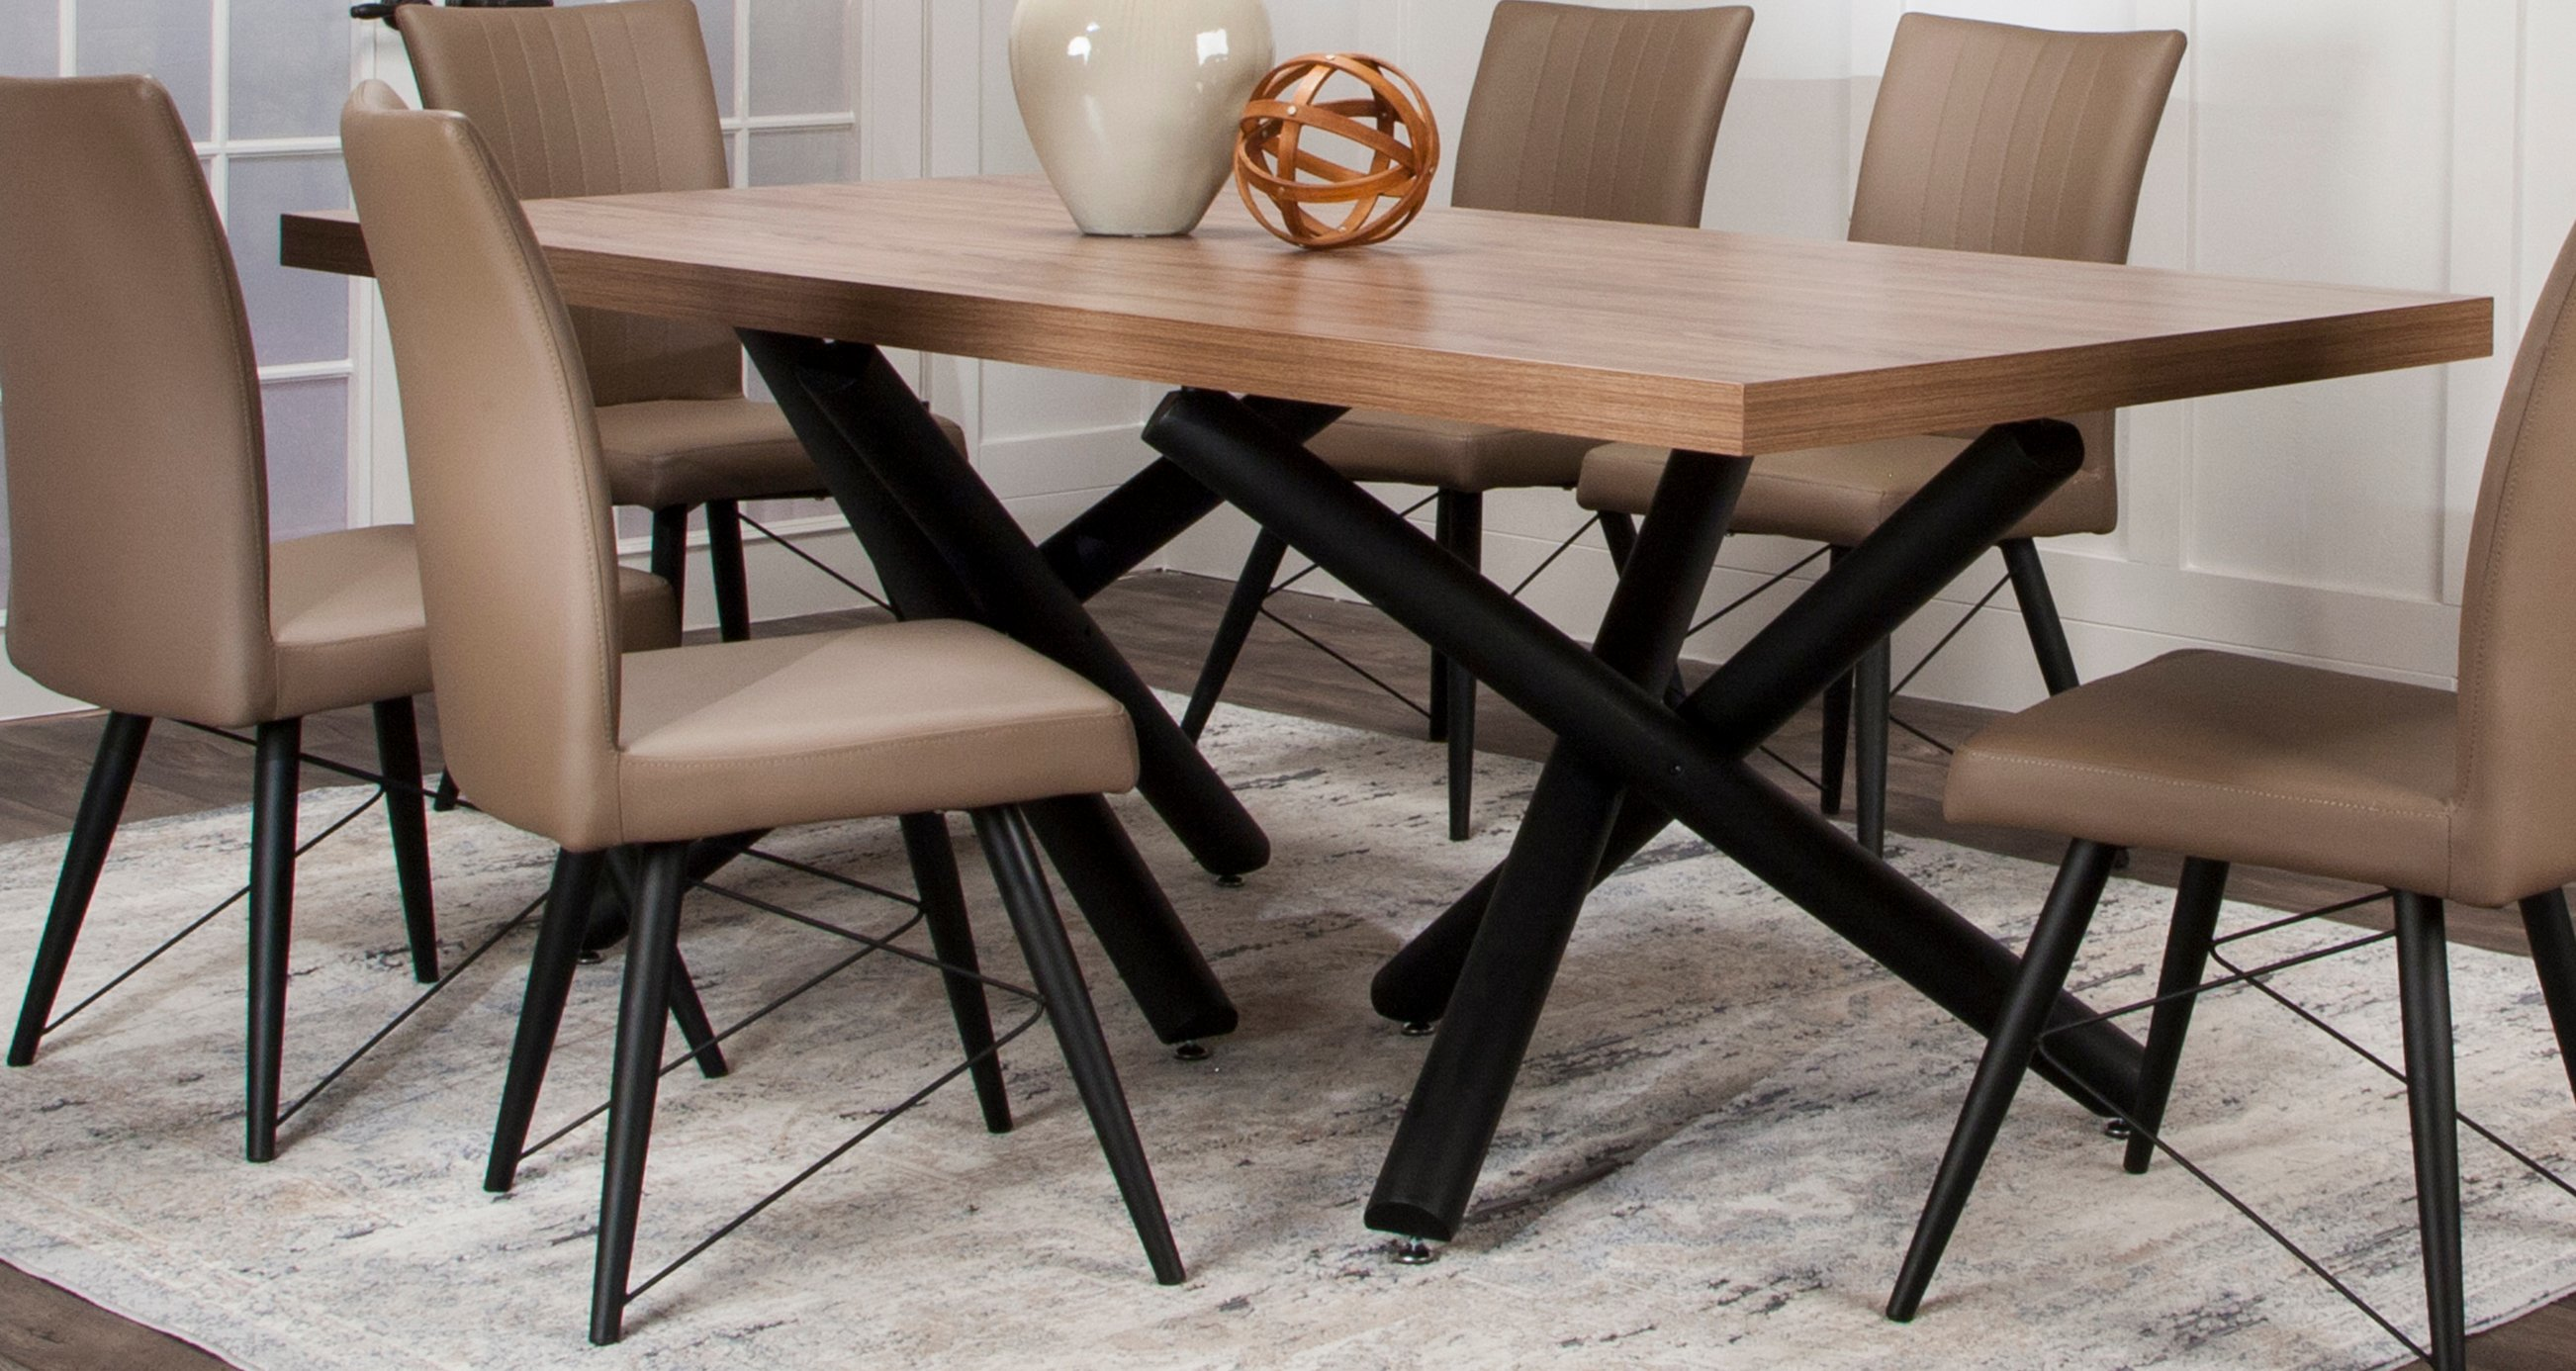 Putty and Black Modern 5 Piece Dining Set - Empire Collection | RC ...